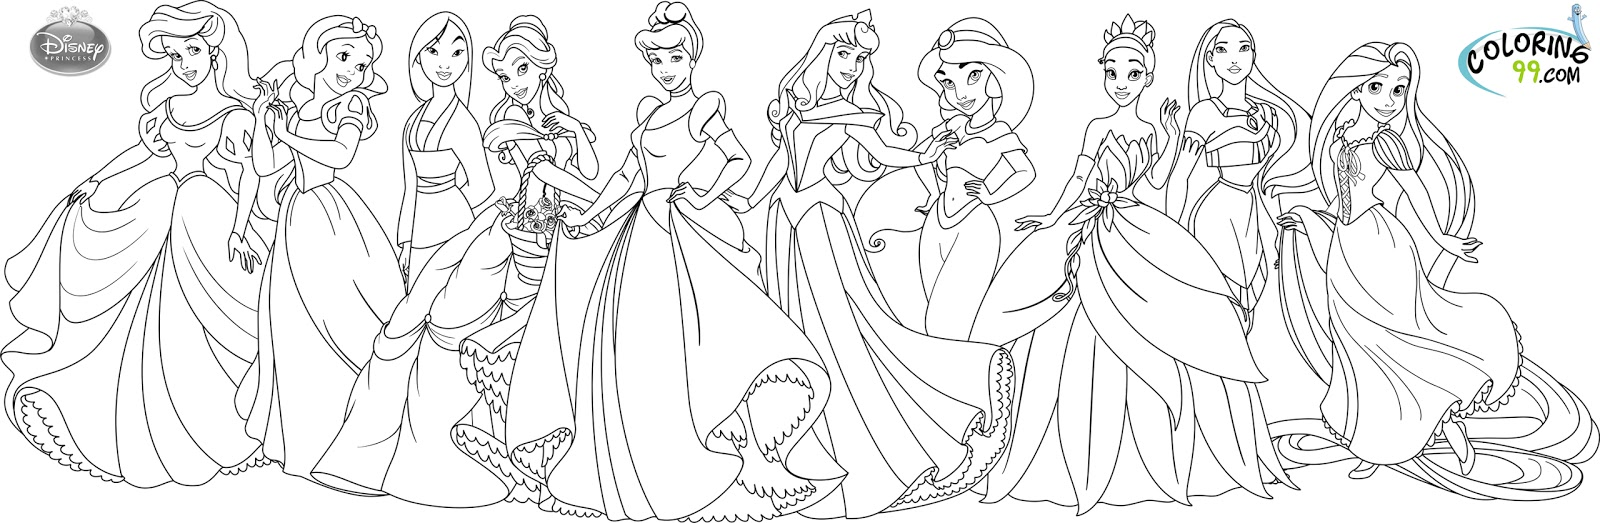 free ariel princess coloring pages - photo#35